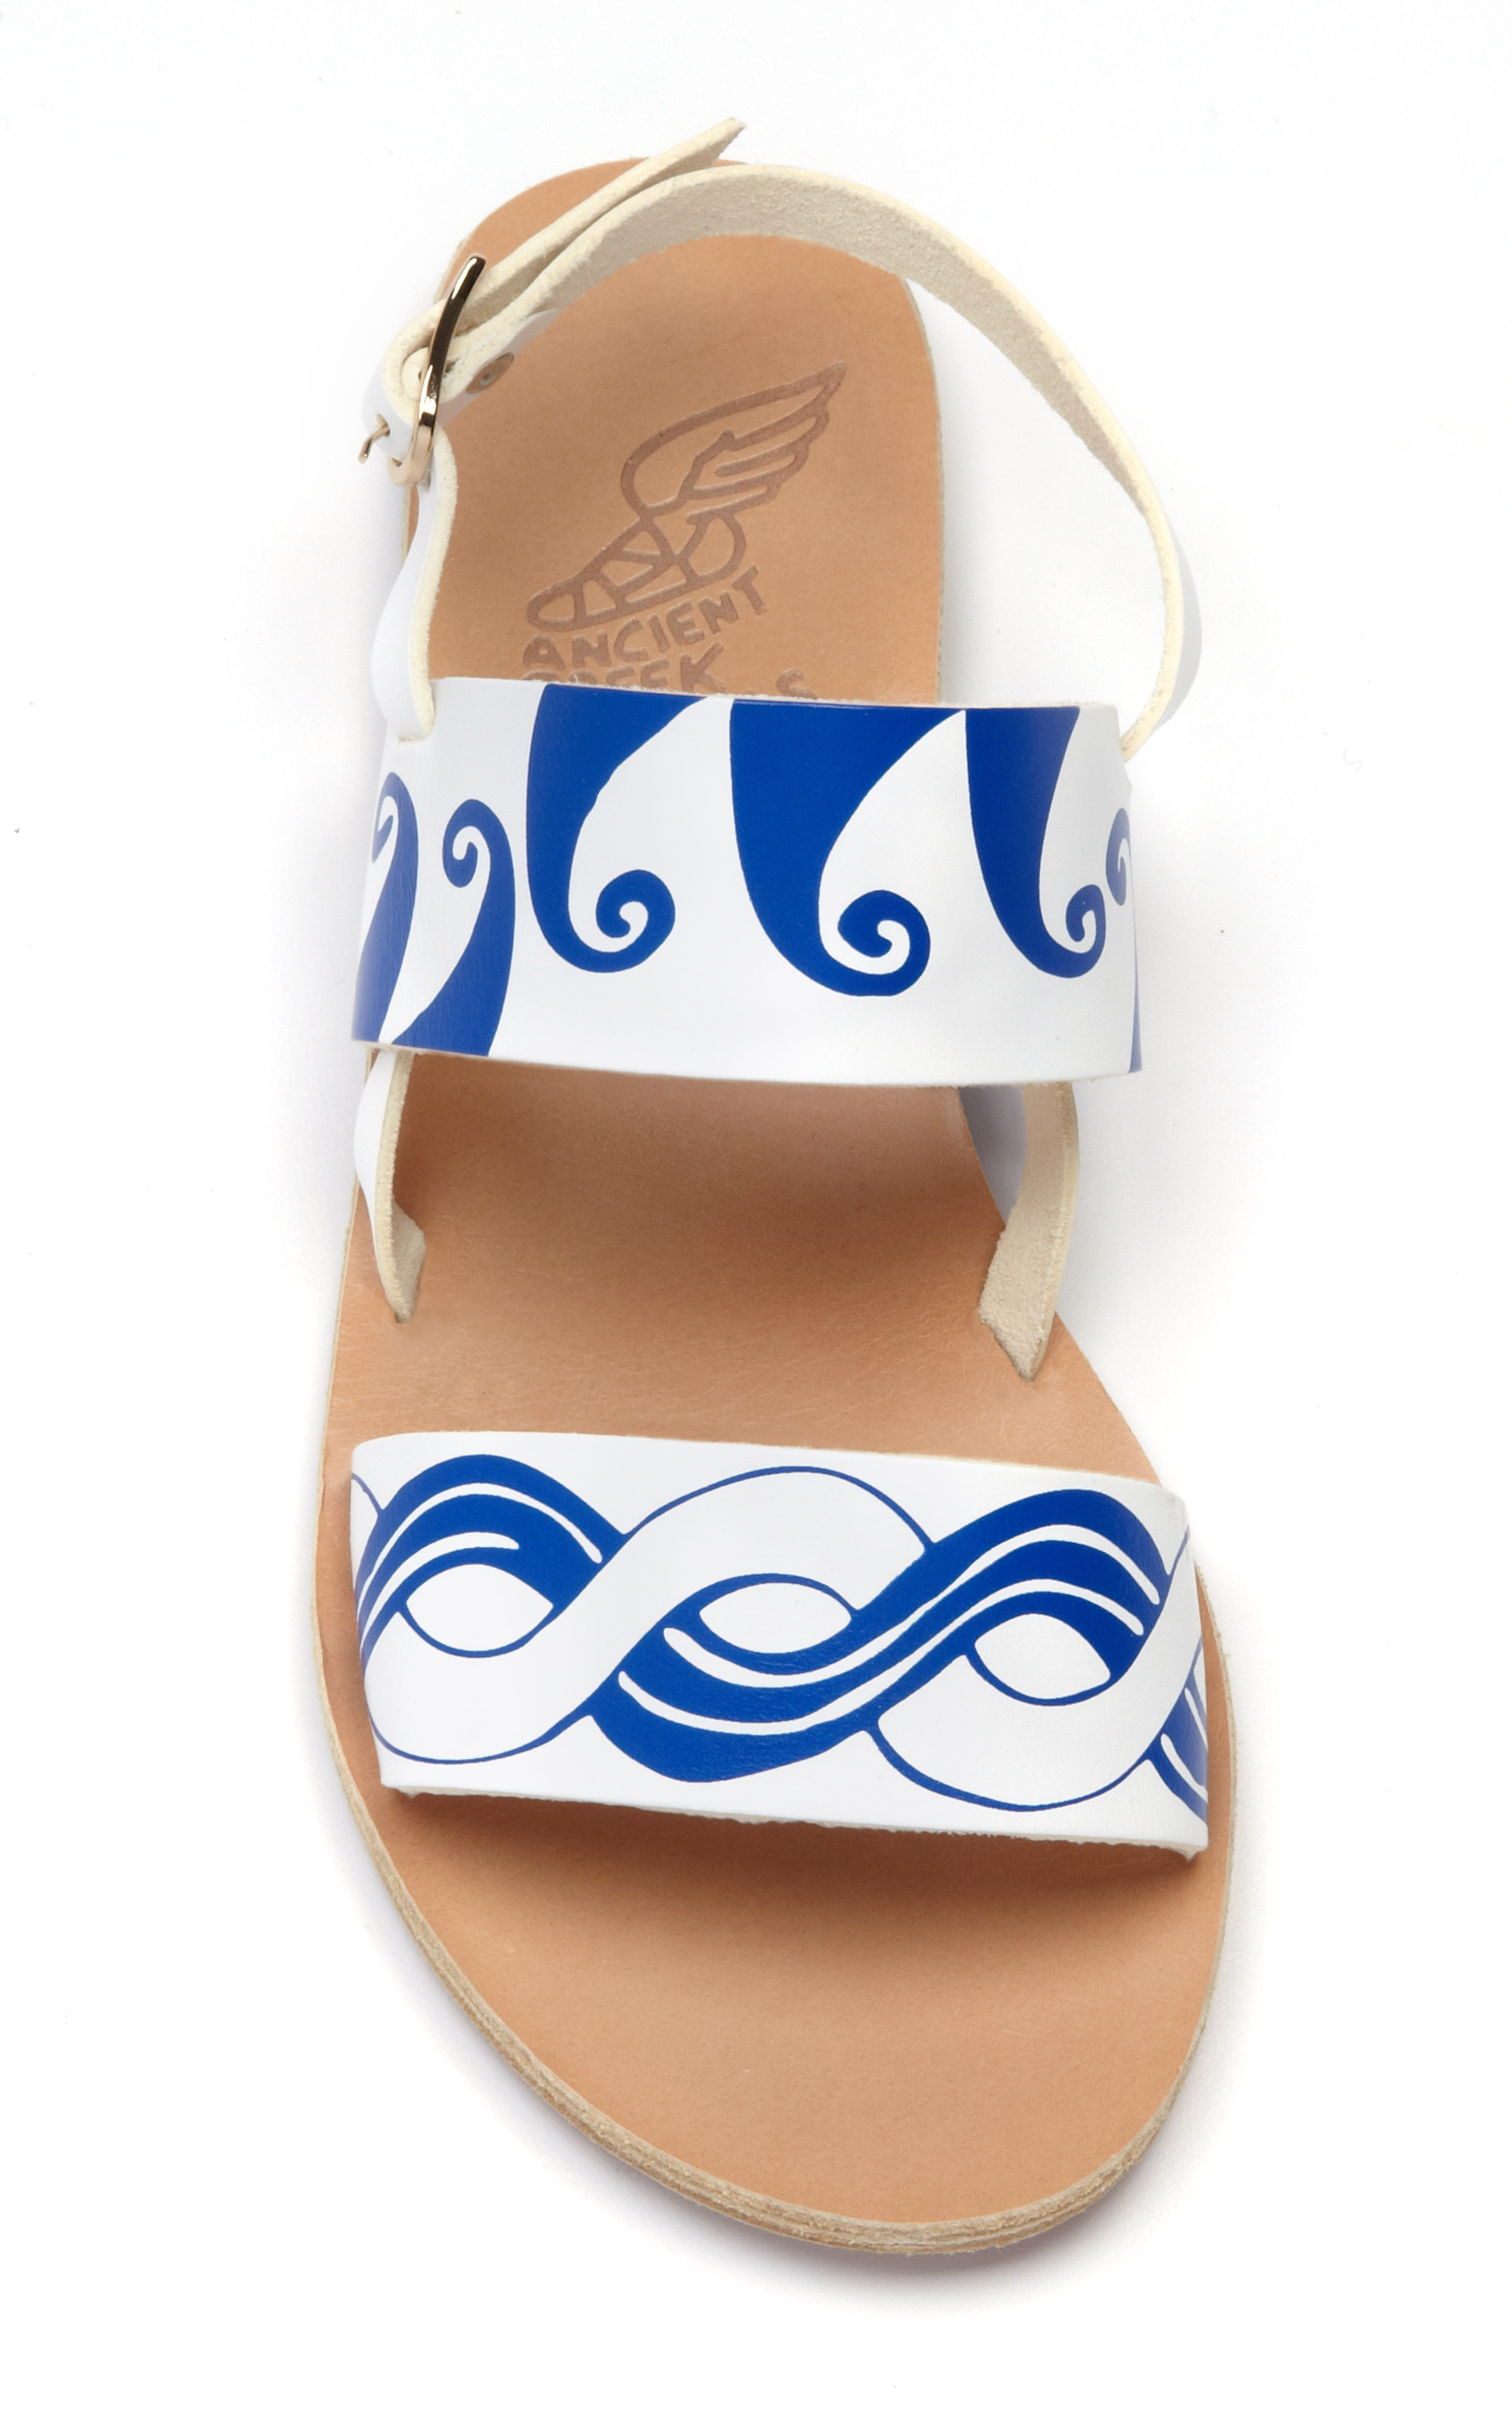 fdcf7f5cbbcd7 Lyst - Ancient Greek Sandals White Blue Calypso Sandal in White